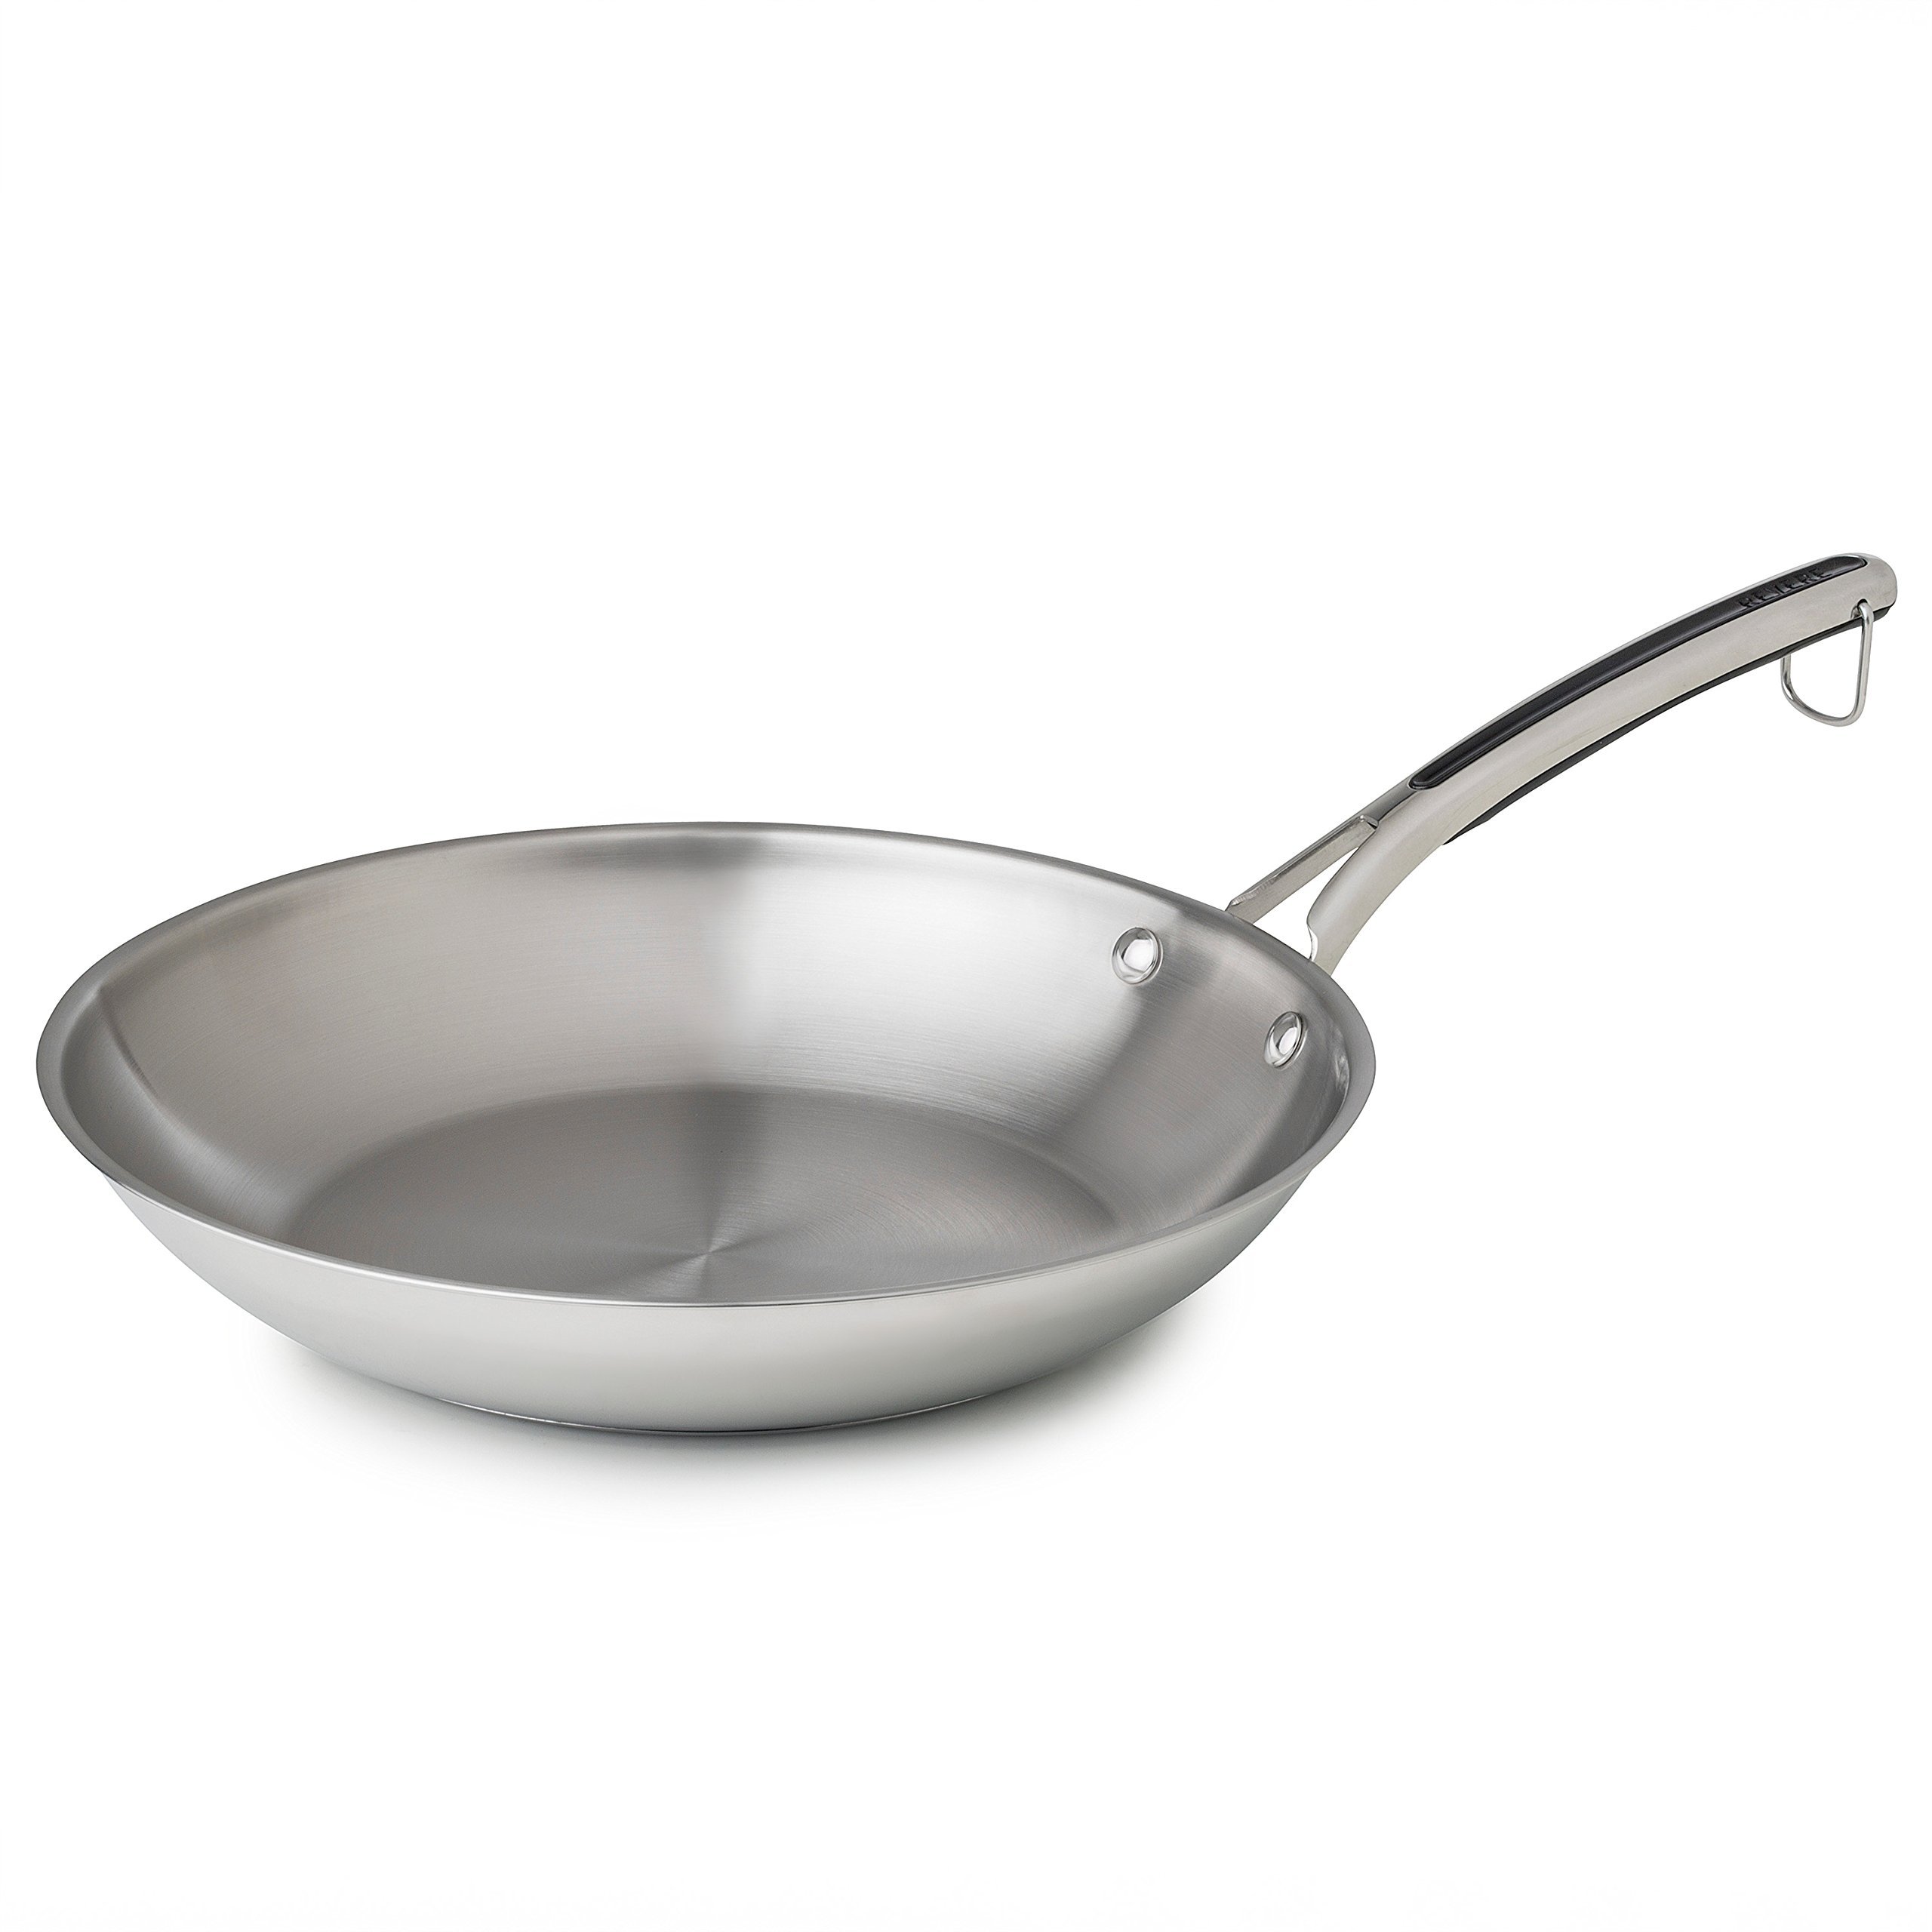 Revere 12'' Fry Pan, One Size, Stainless Steel